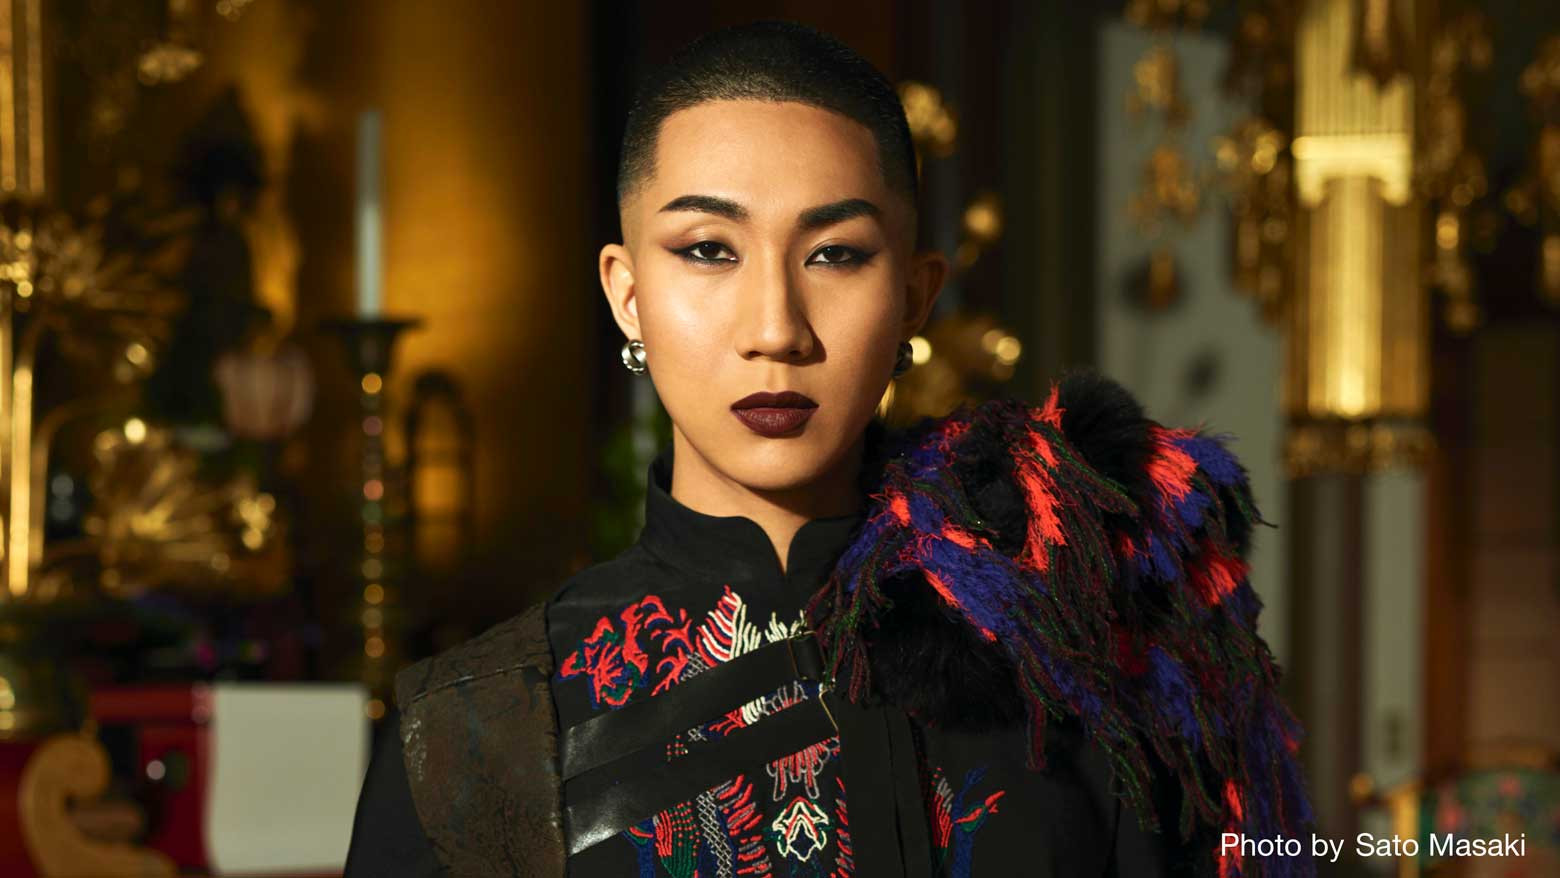 Makeup artist monk teaches tolerance of sexual diversity